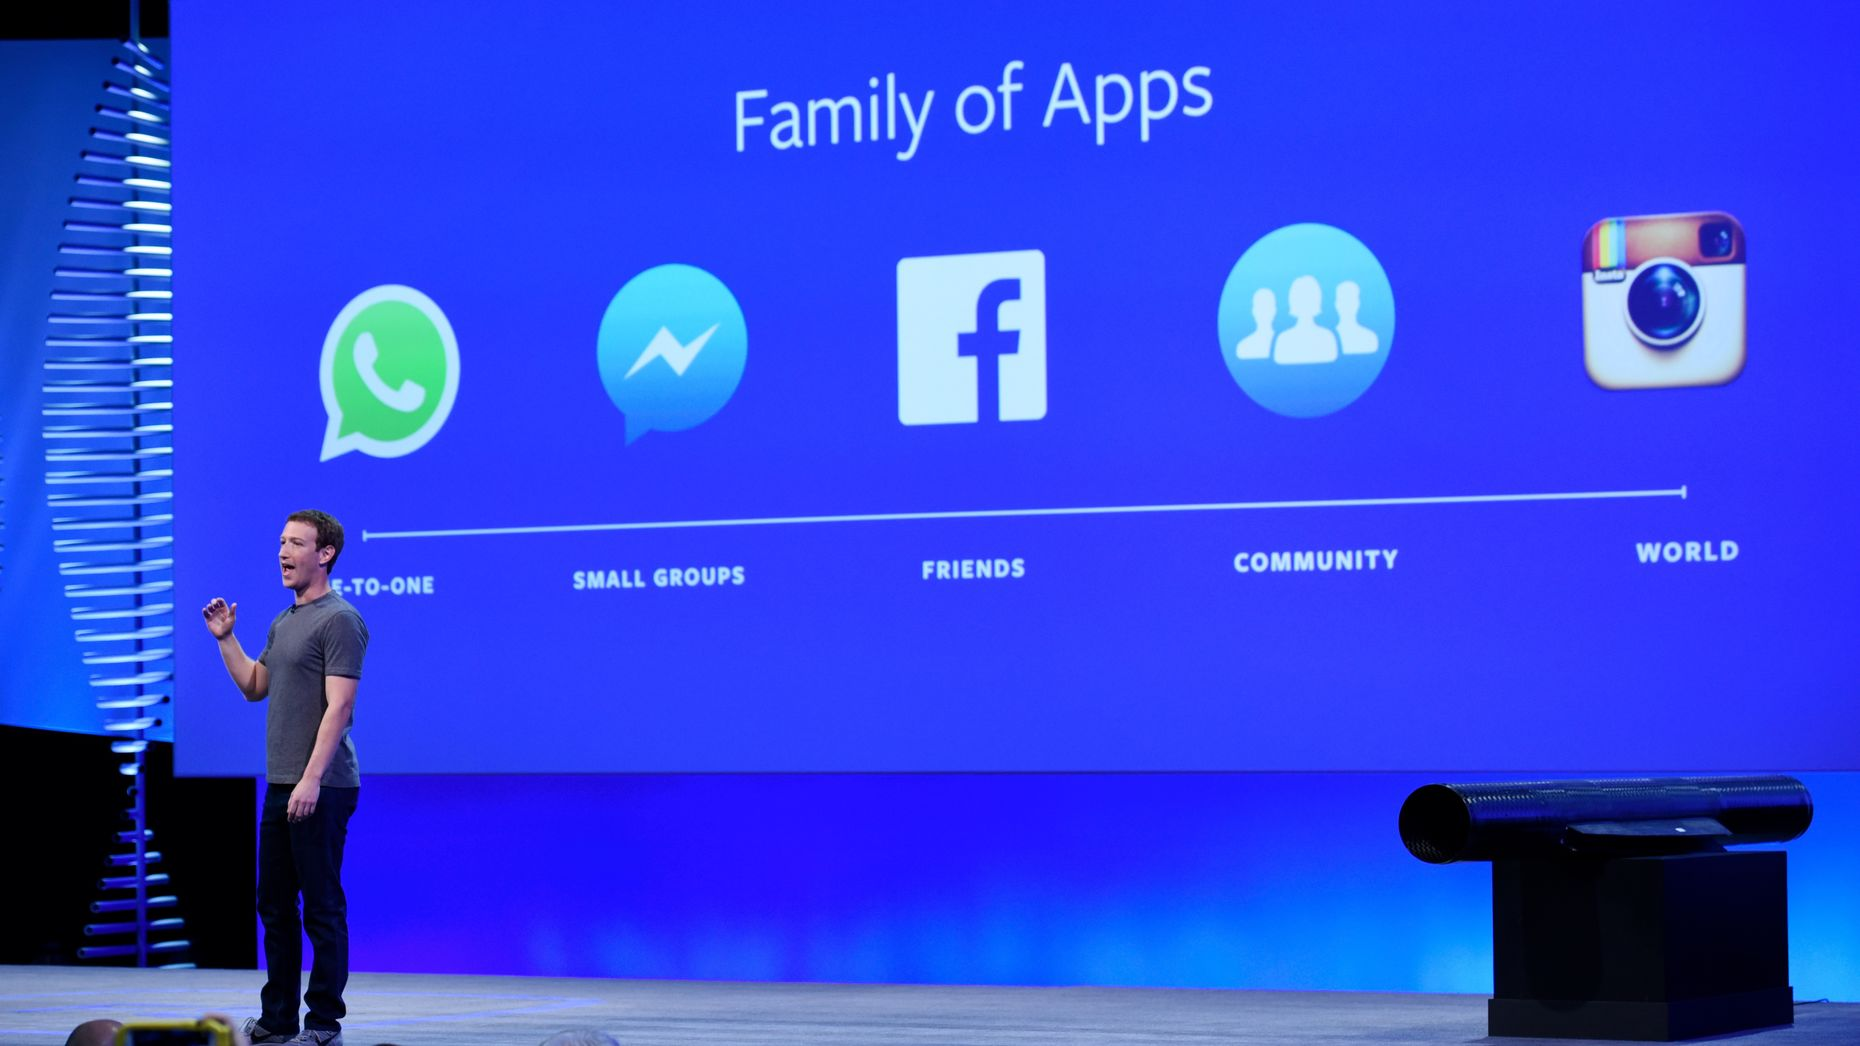 Facebook CEO Mark Zuckerberg at this year's F8 developer conference. Photo by Bloomberg.